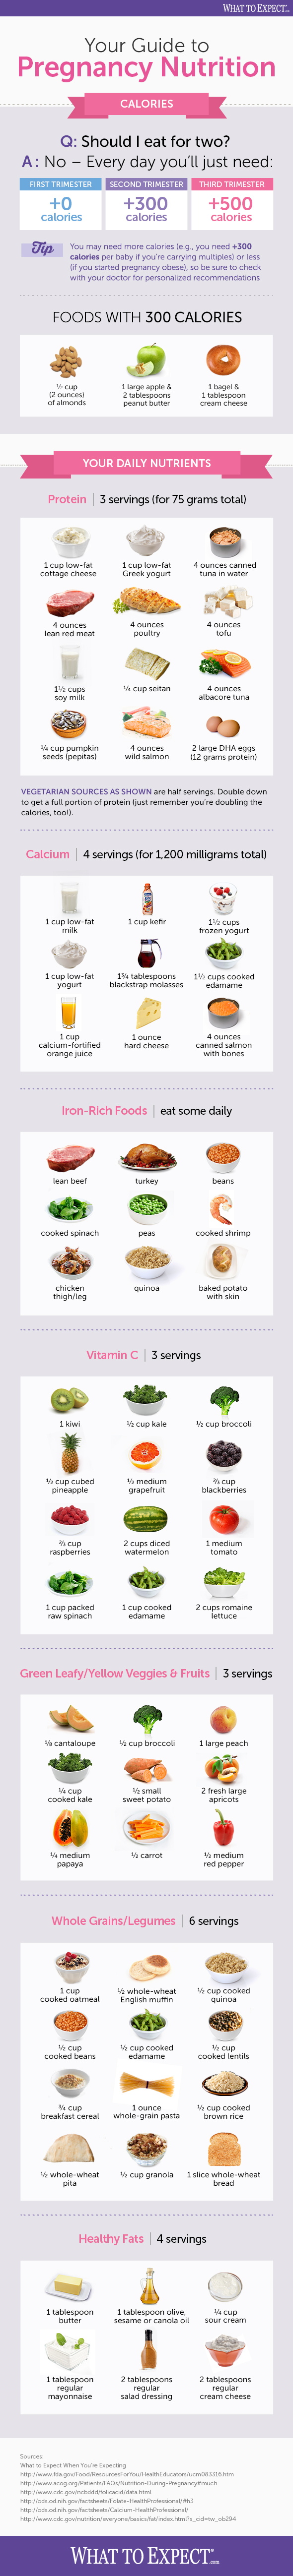 How to Eat Right During Pregnancy - Infographic